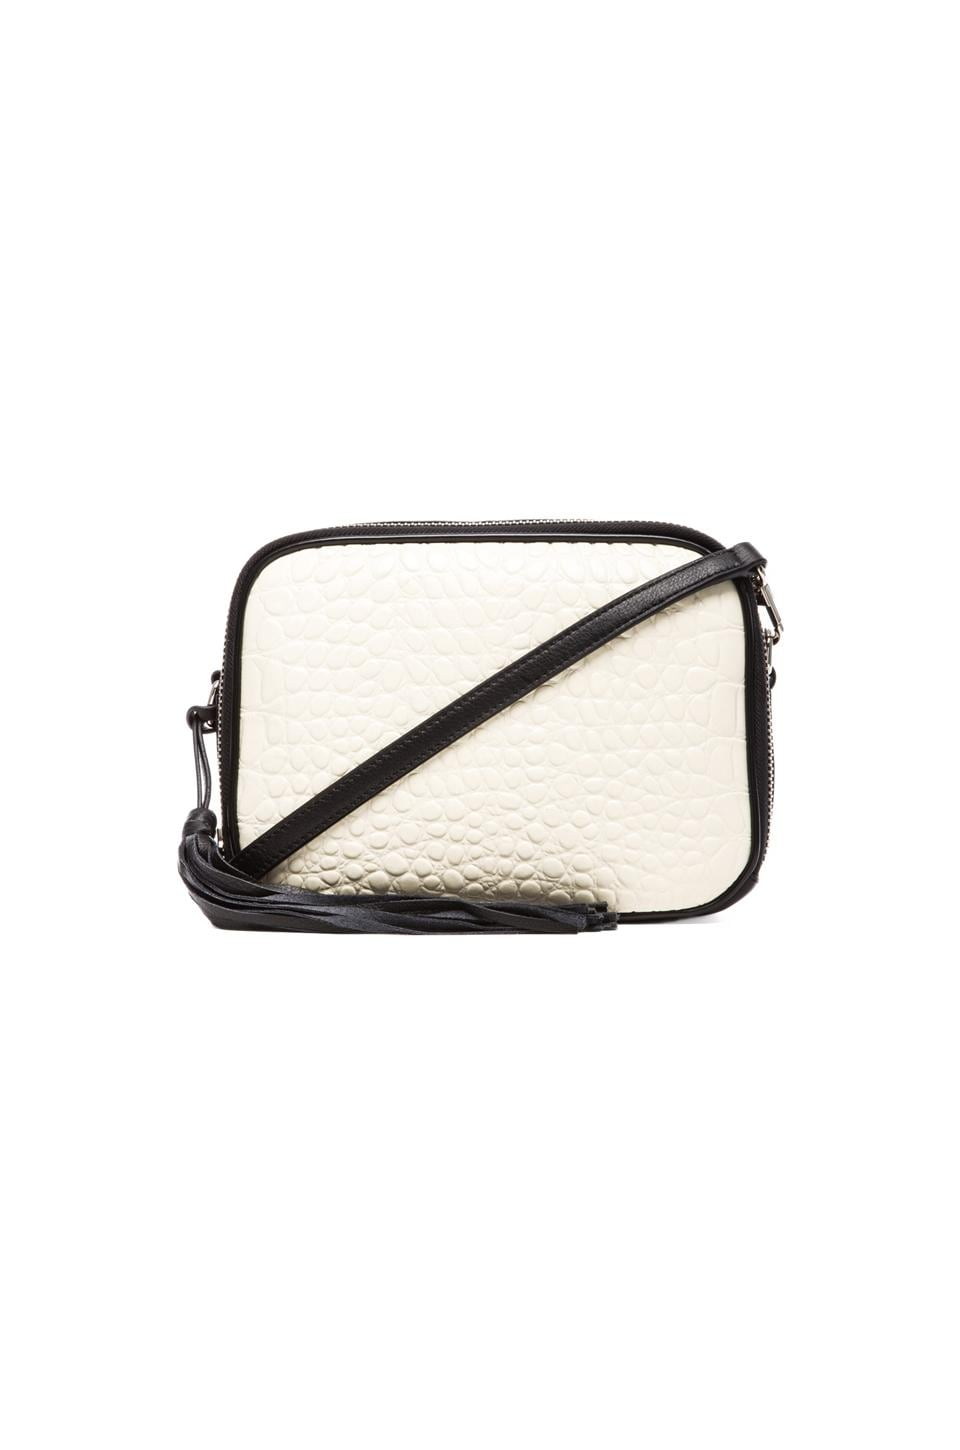 Pour La Victoire Crossbody Bag in White/Black